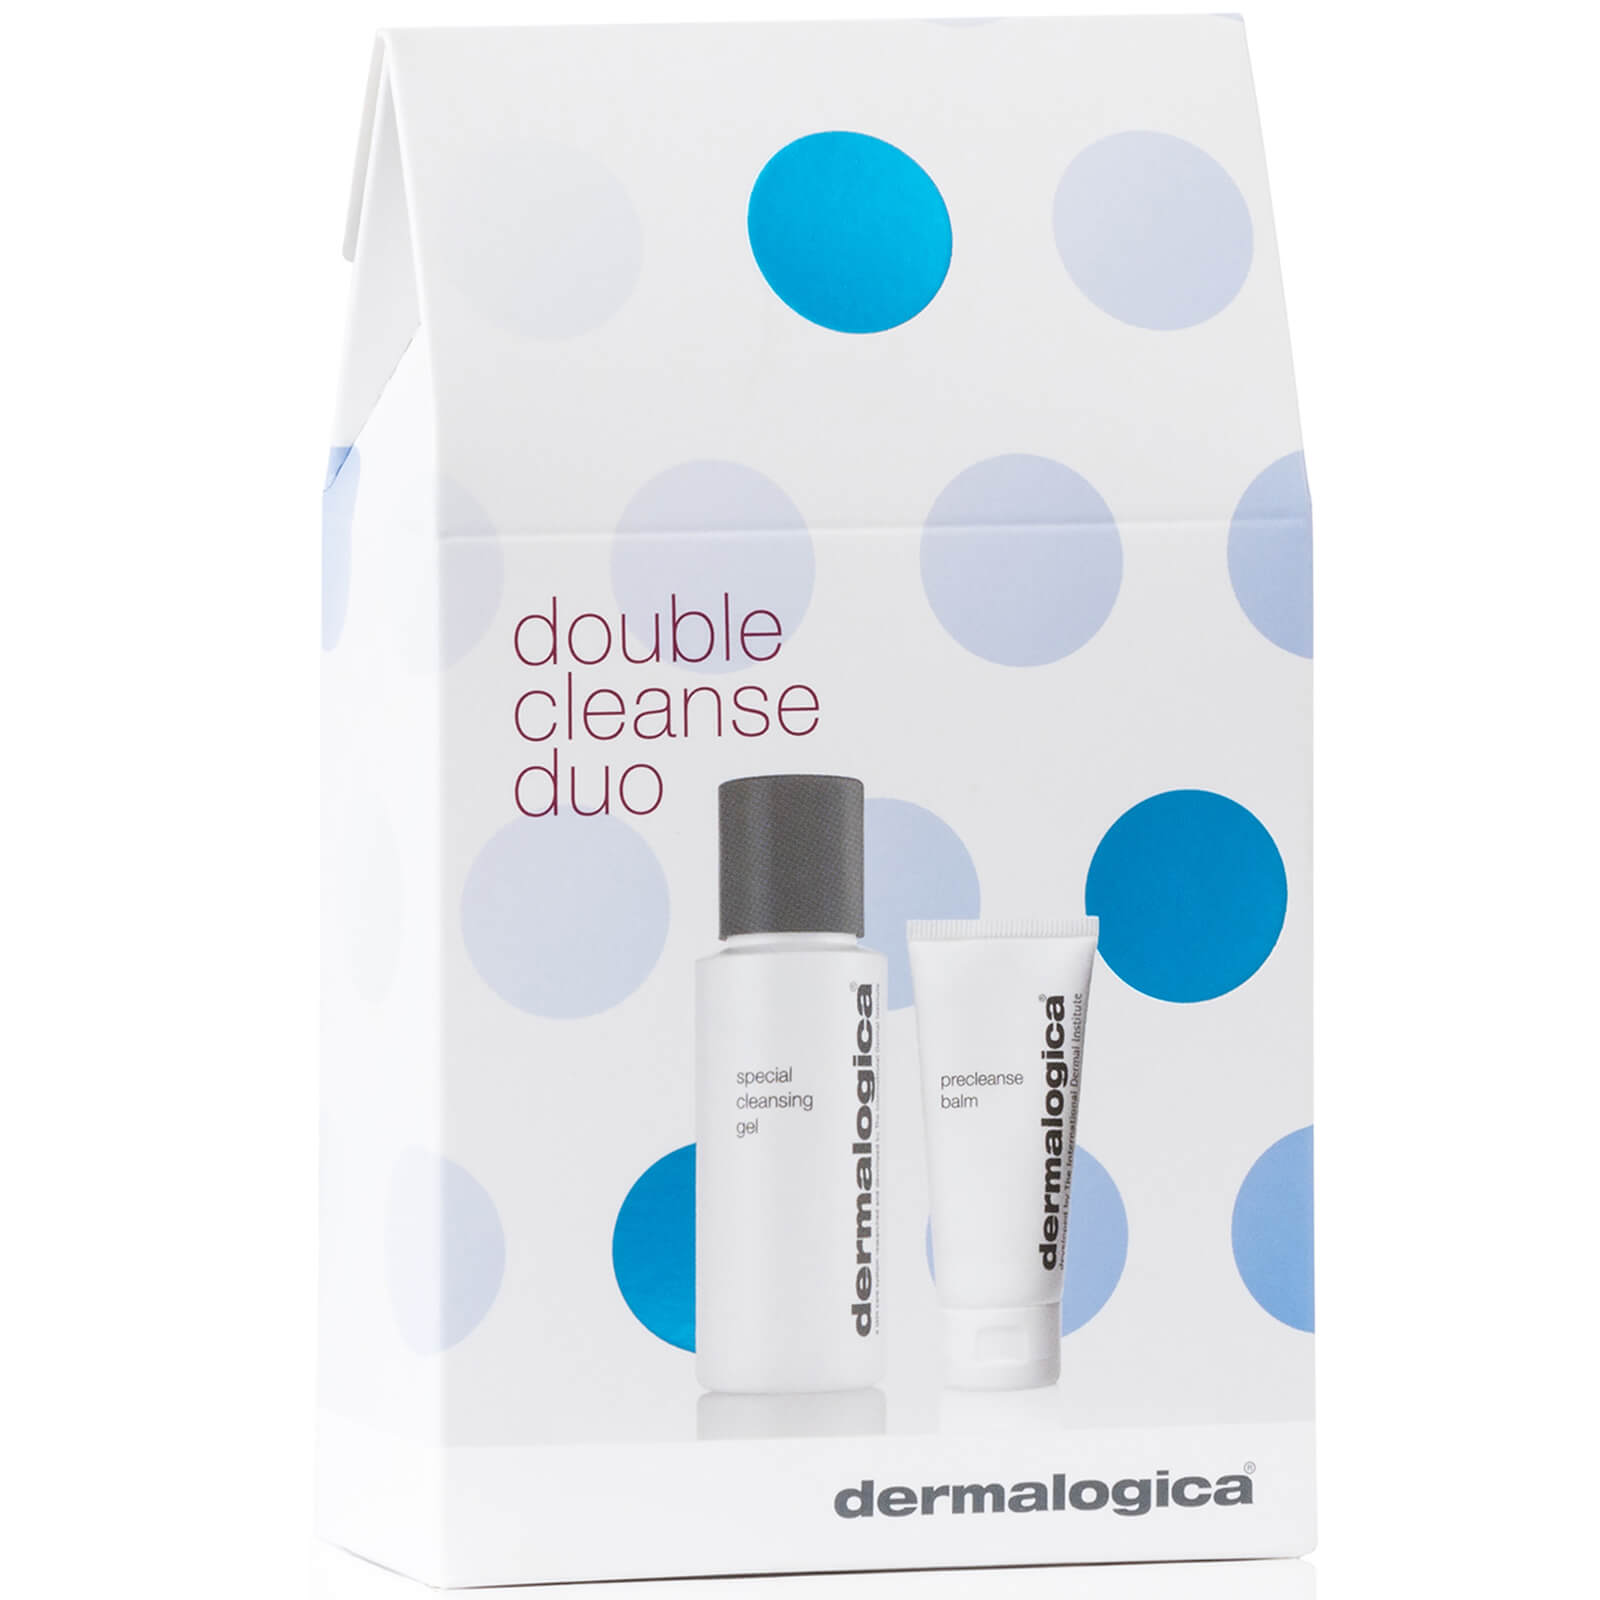 Dermalogica Double Cleanse Duo (Worth £22.00)